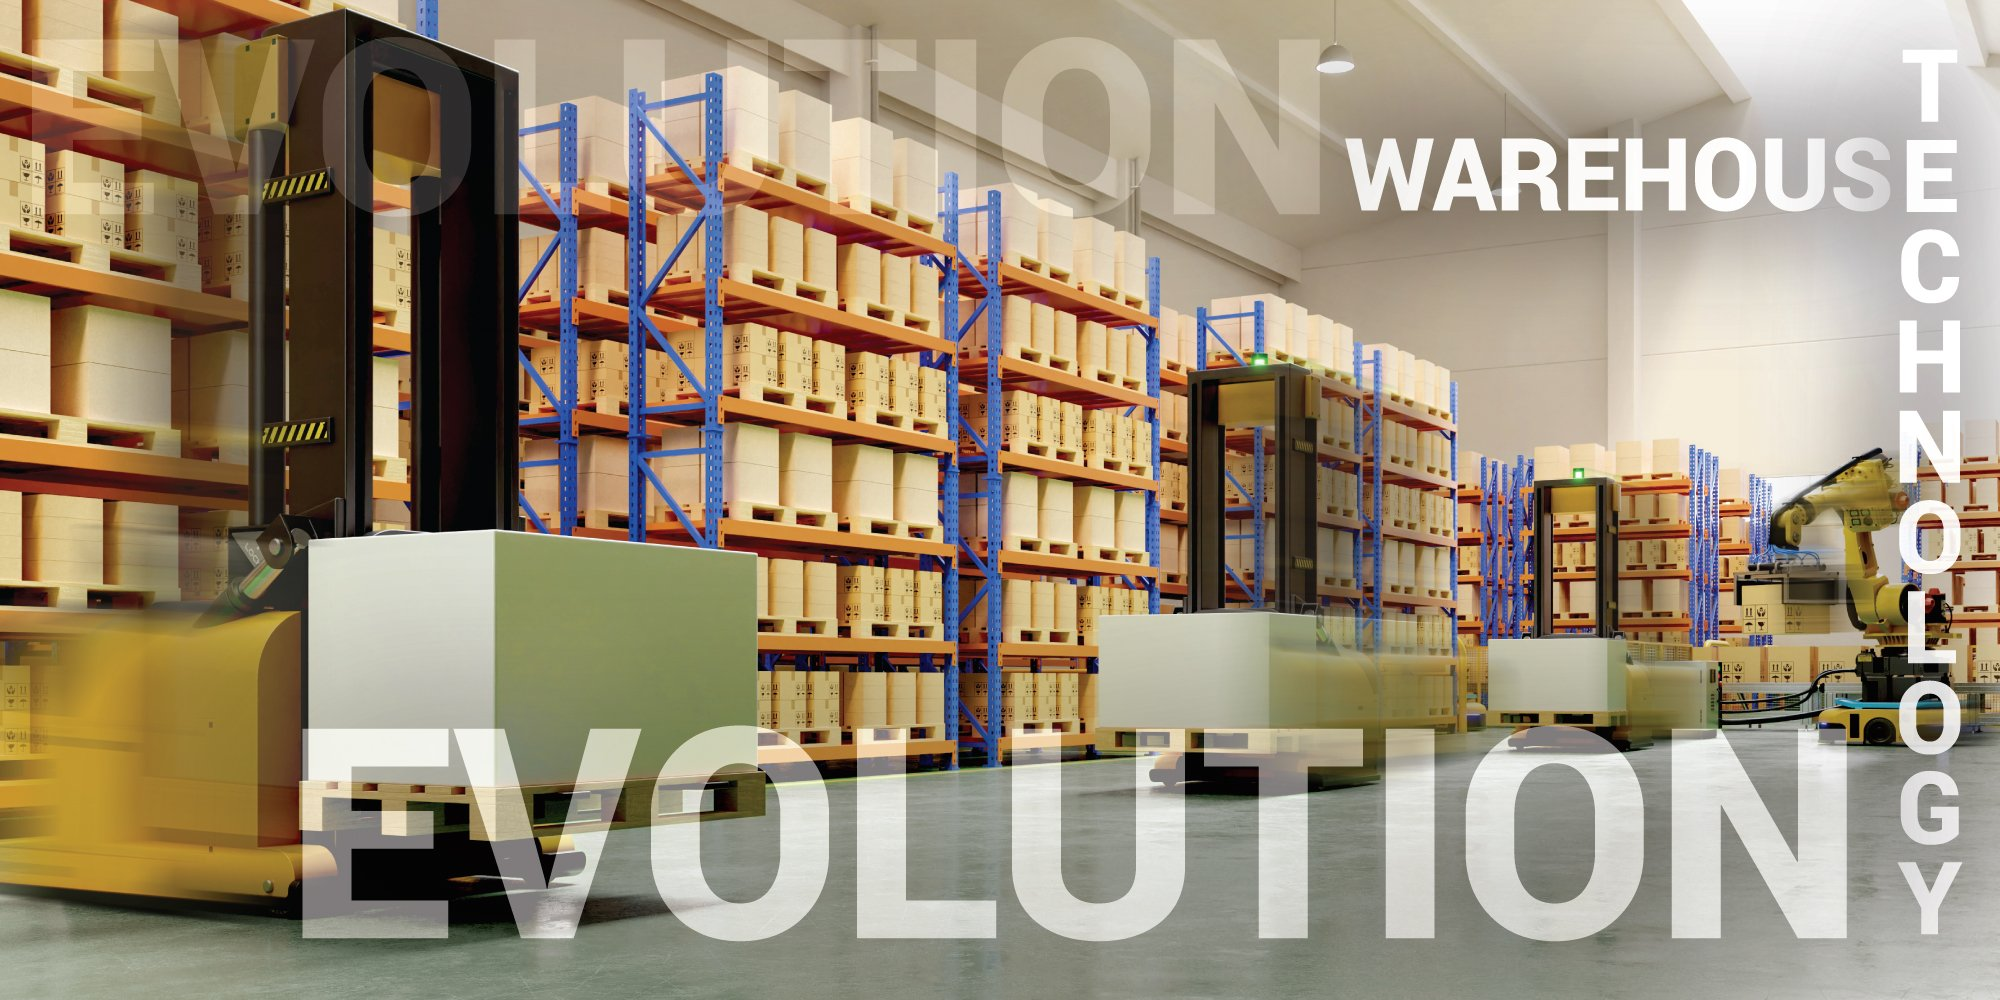 Evolution of Warehouse Technology: A Bright Spot for Stressed Supply Chains